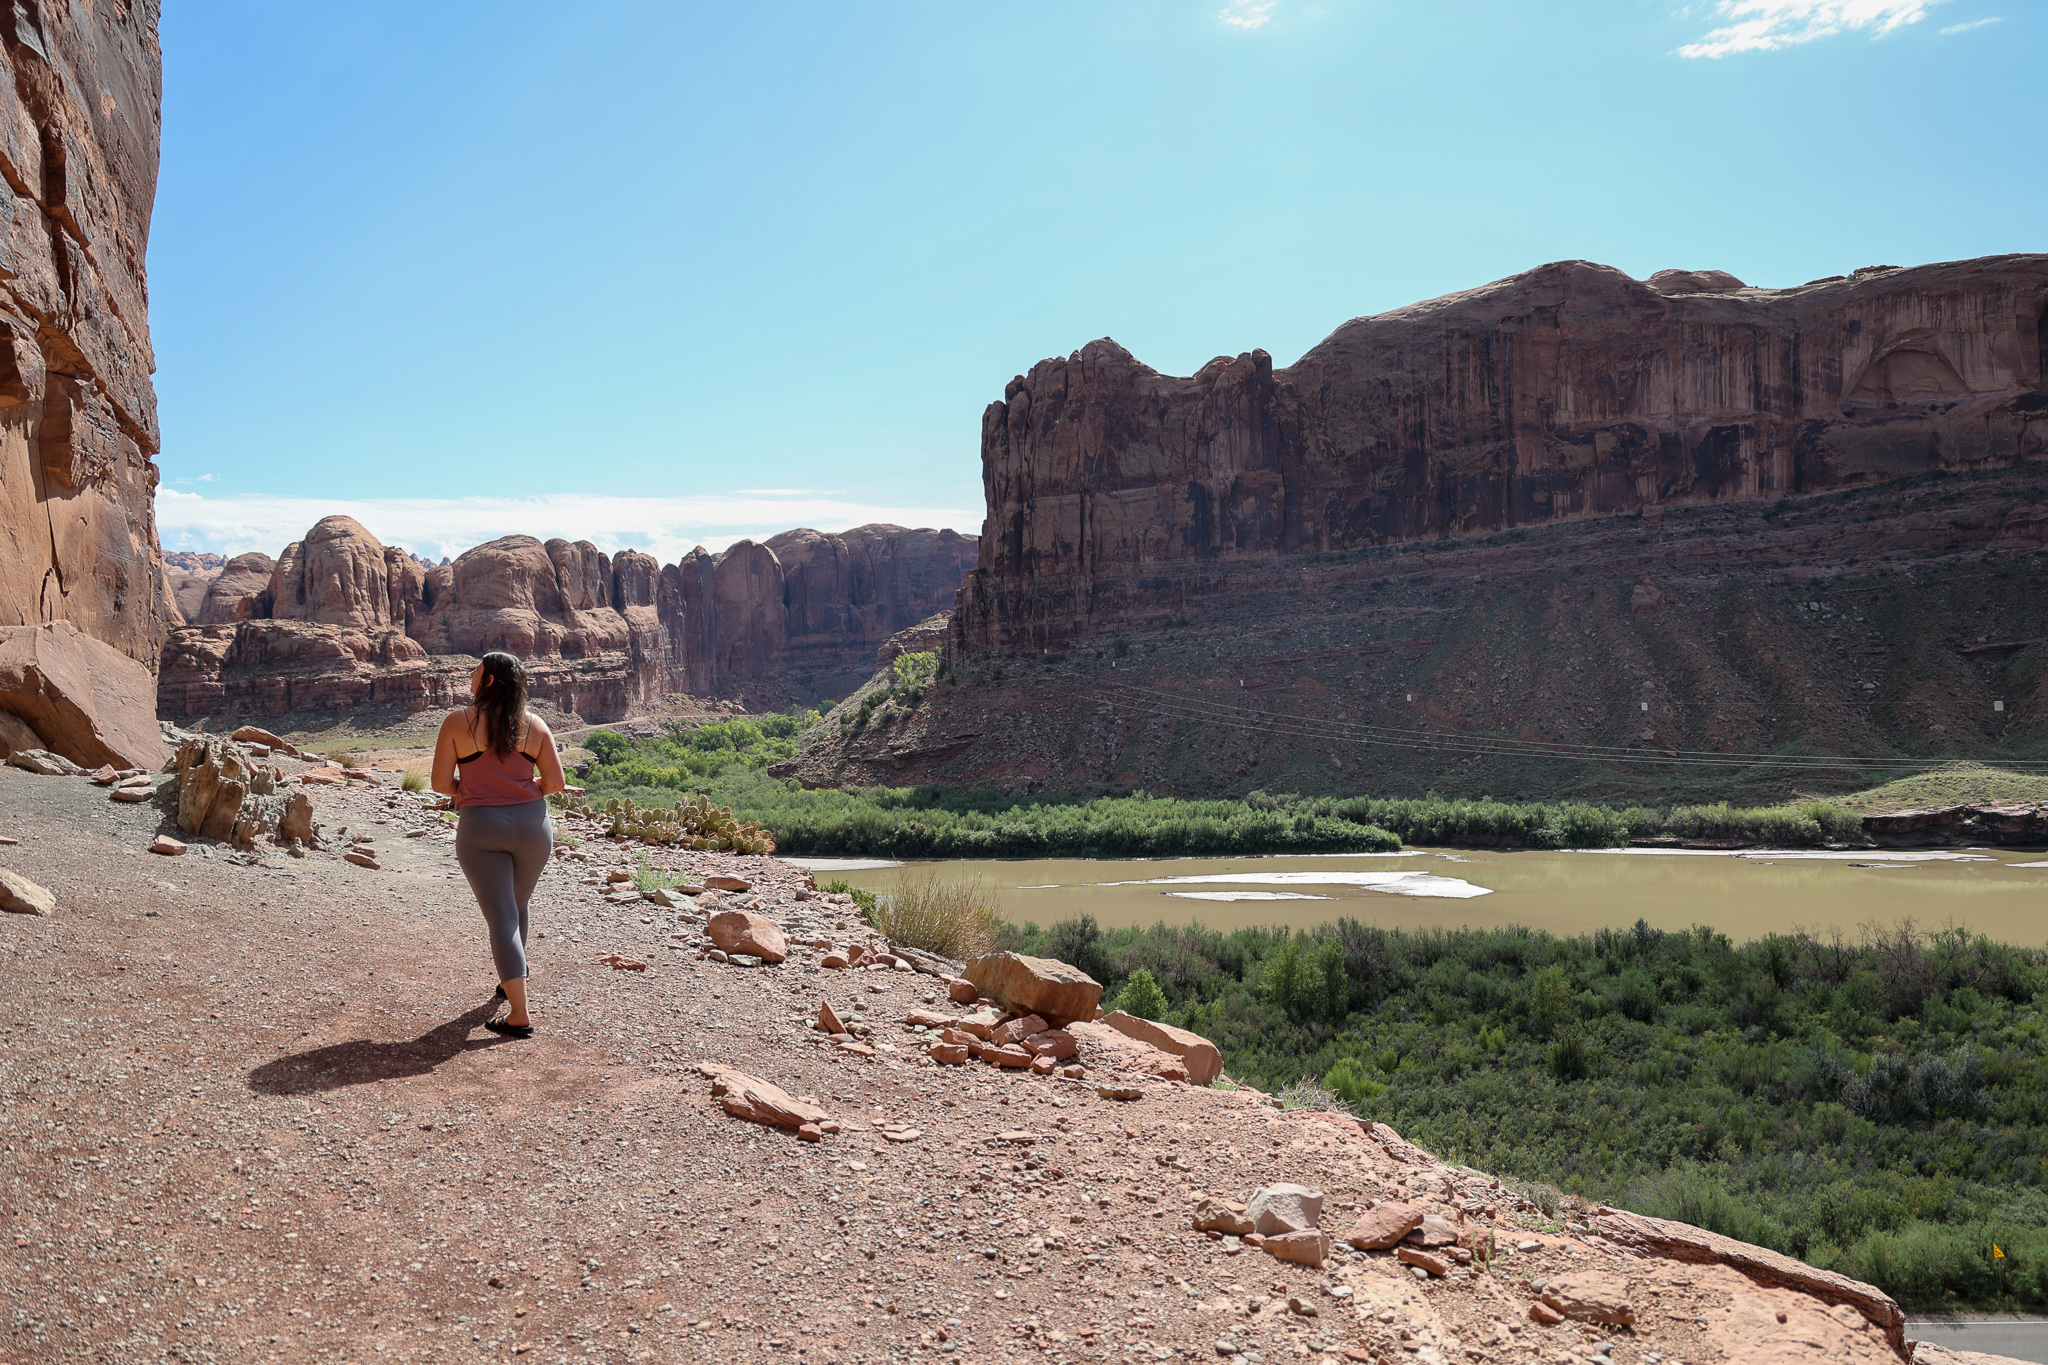 The Best Places to see Dinosaur Tracks In Moab